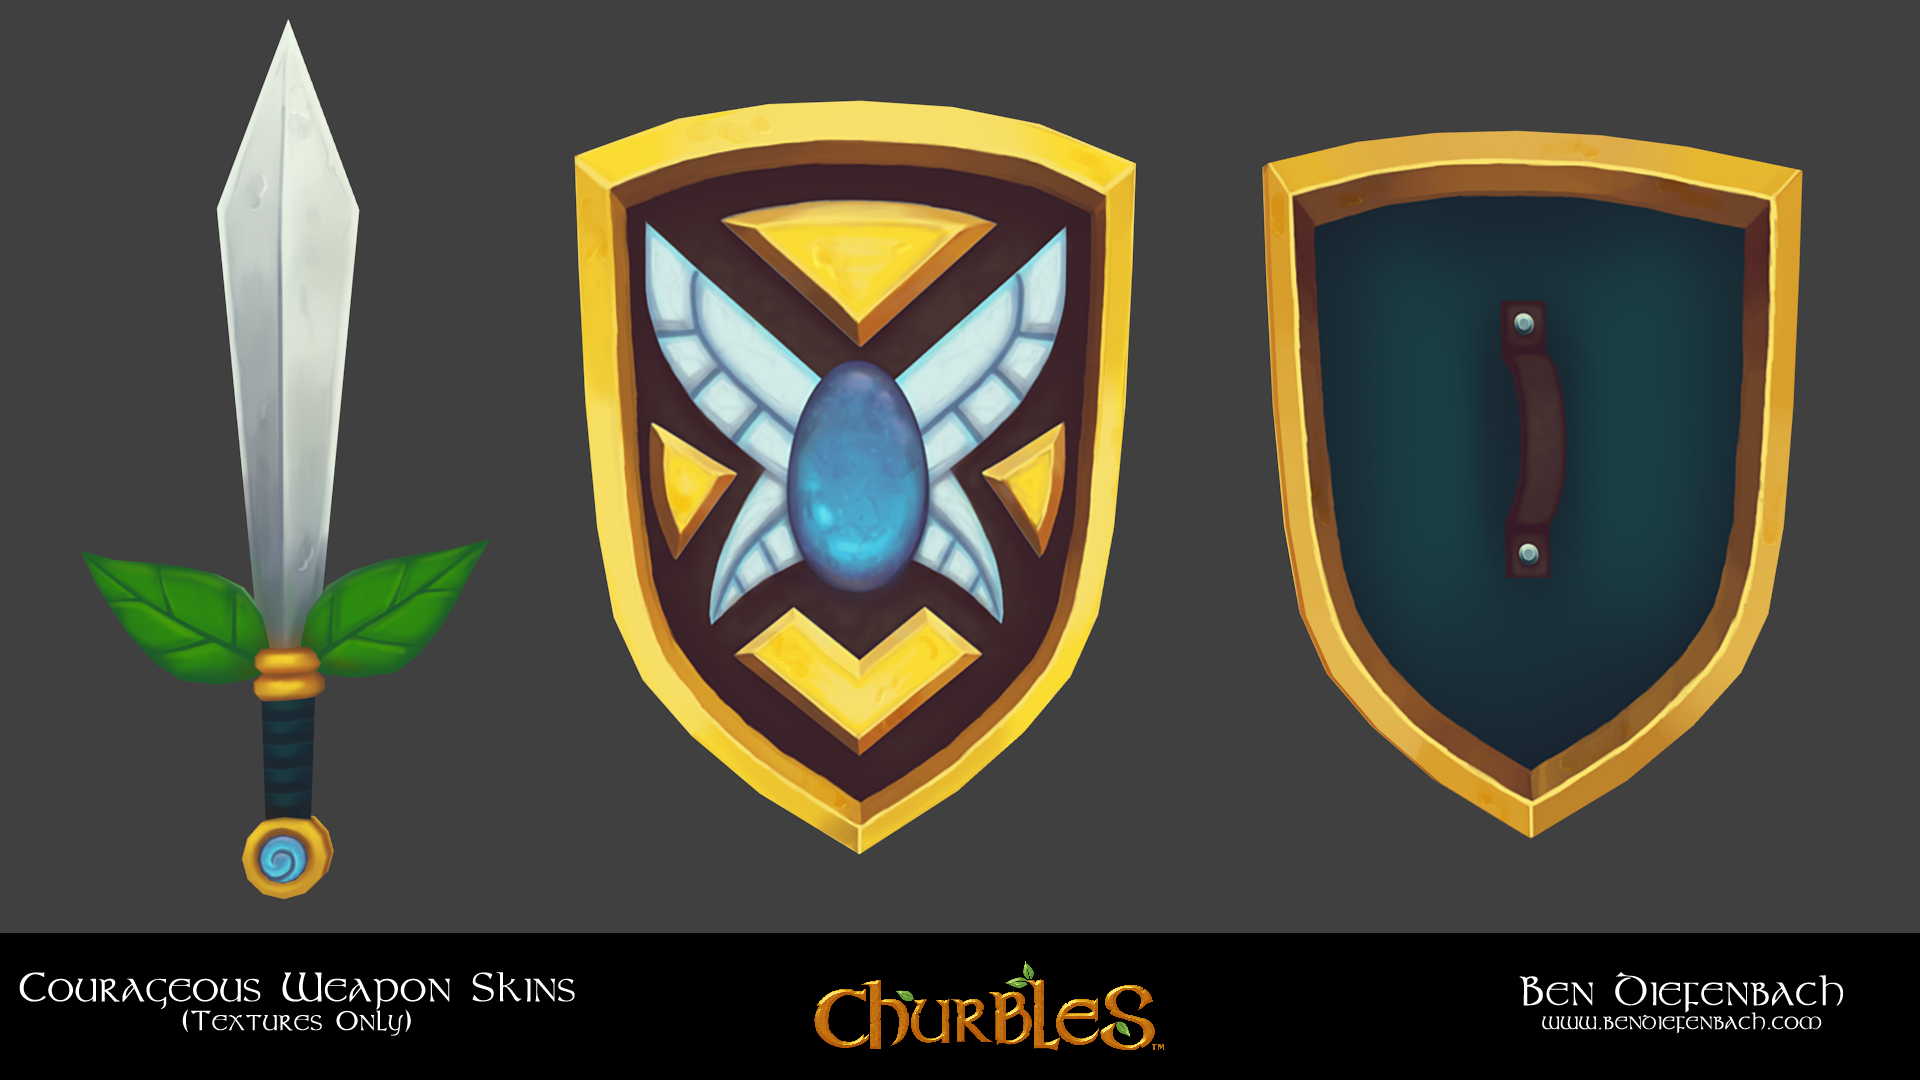 churbles__courageous_weapons_by_darkmag07-d8je56d.png